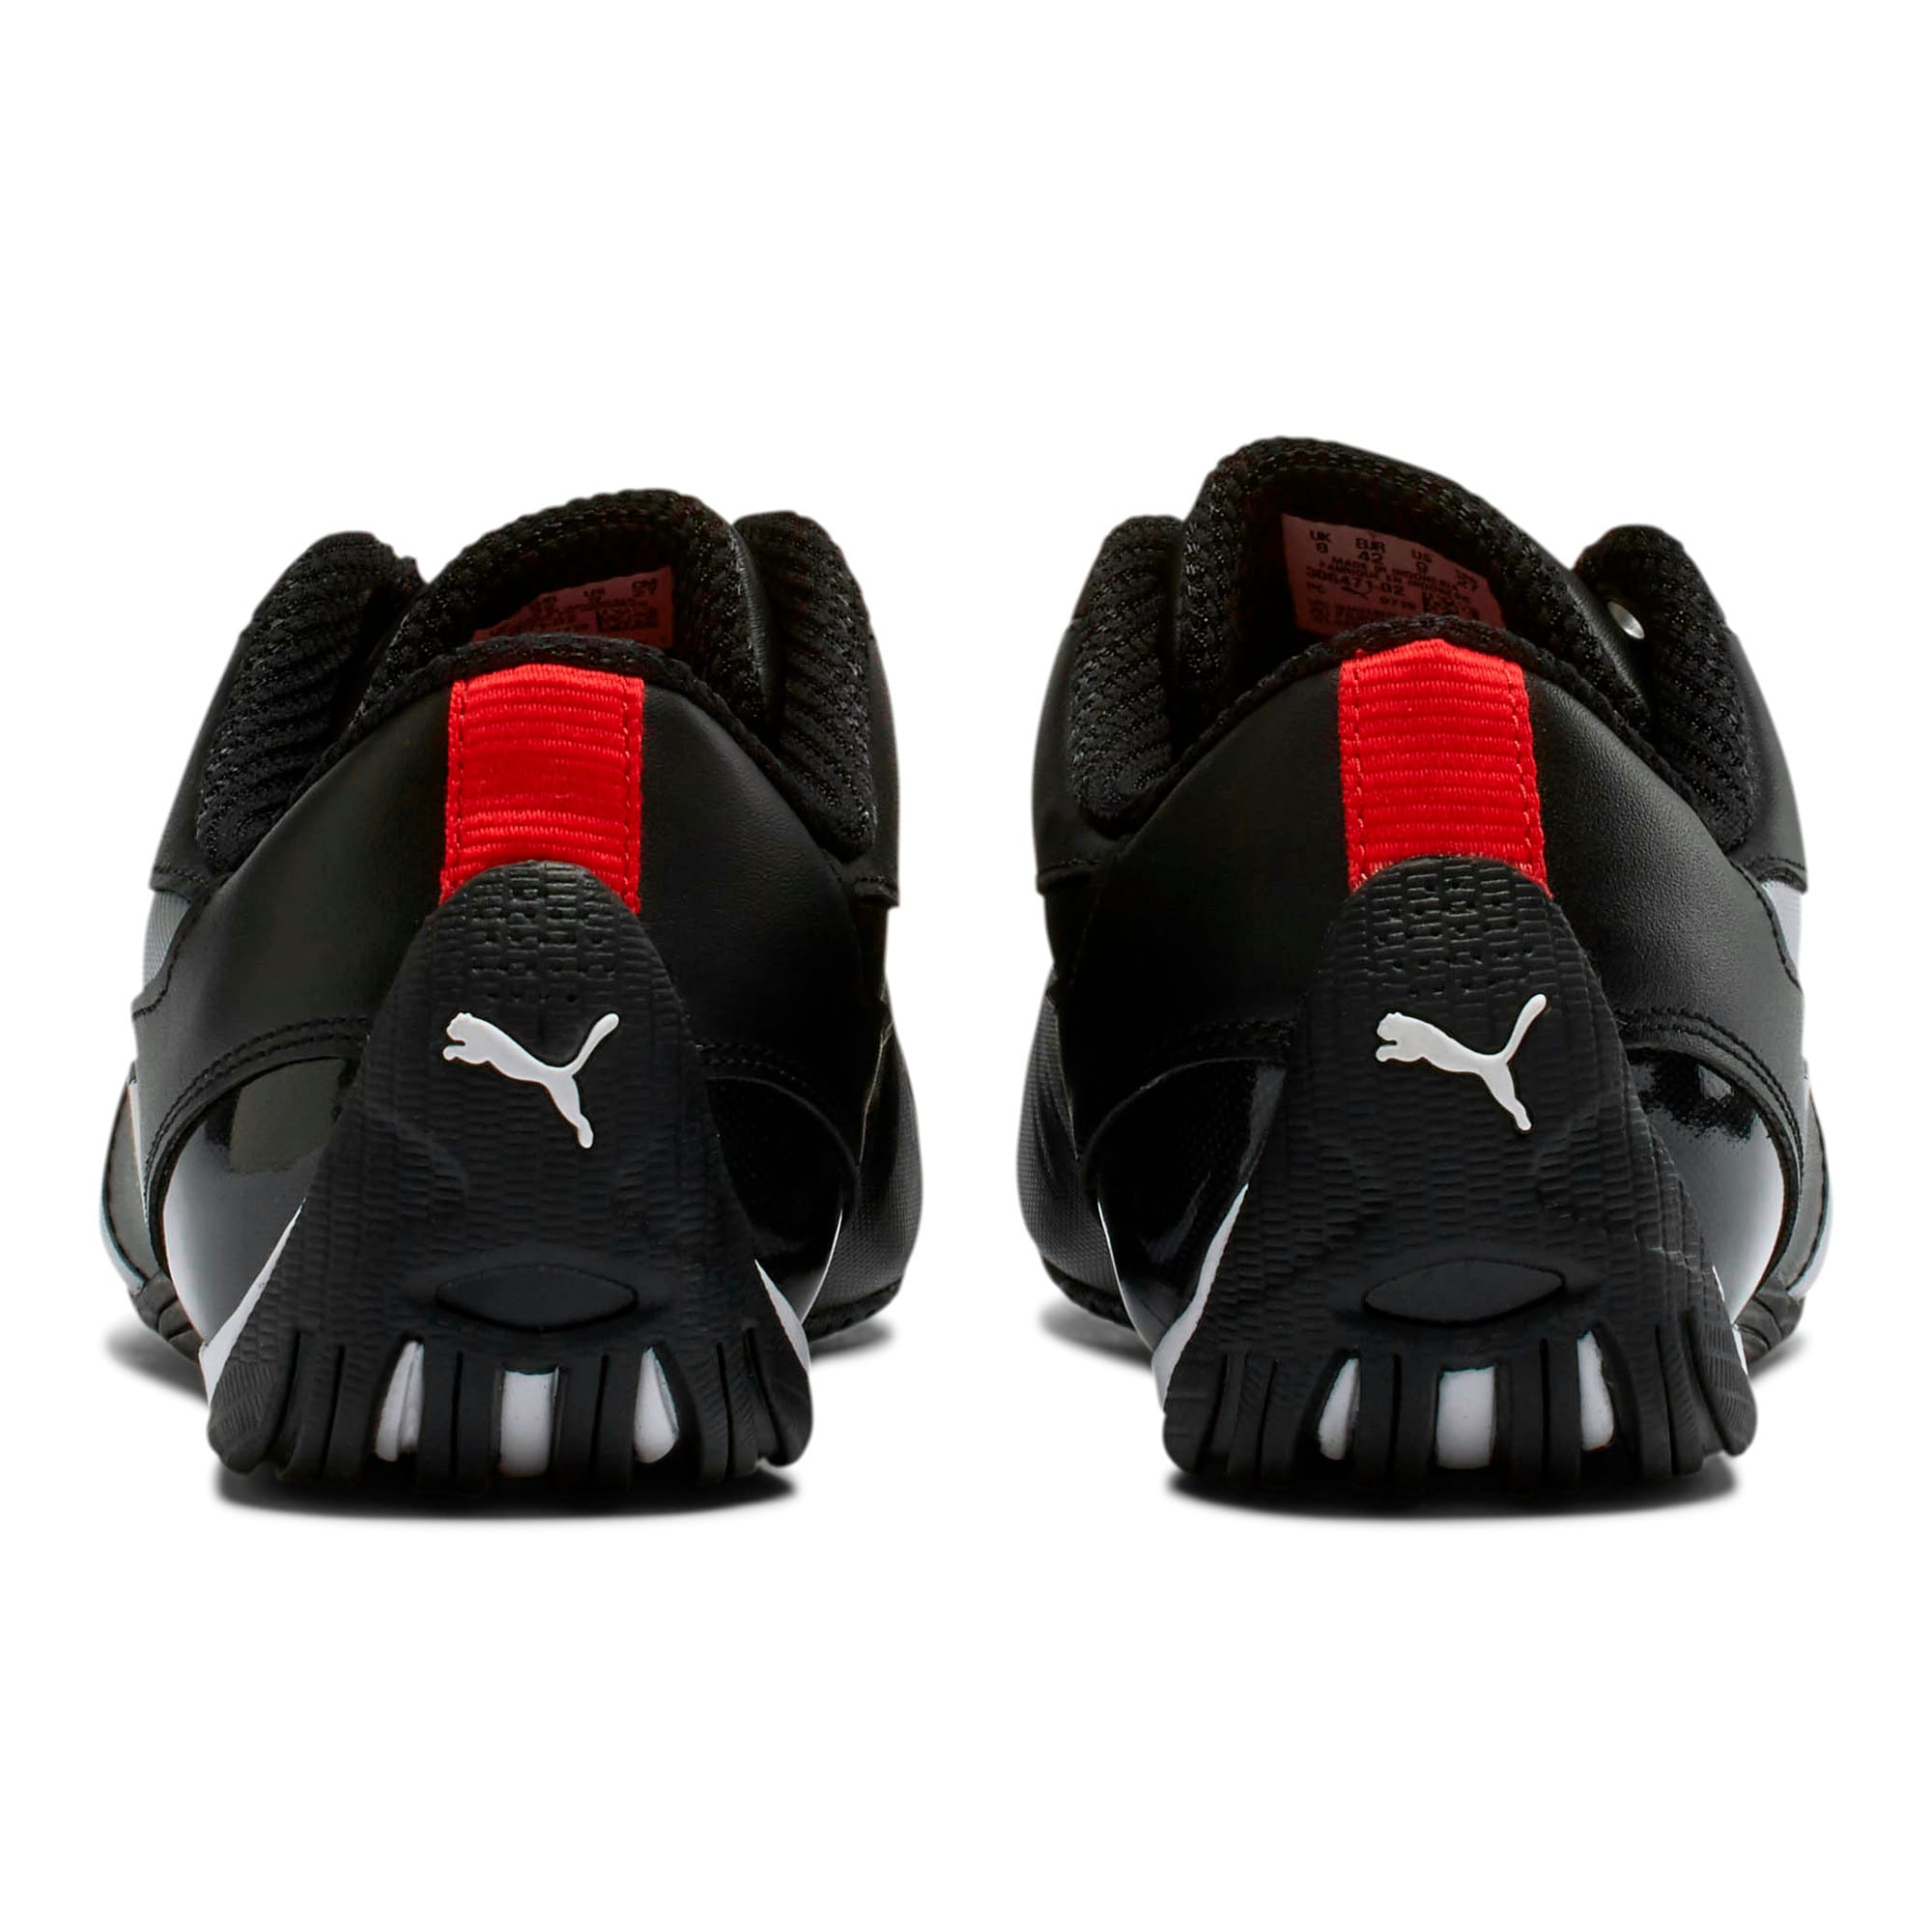 Thumbnail 3 of Scuderia Ferrari Drift Cat 5 NM Men's Shoes, Puma Black-Puma Black, medium